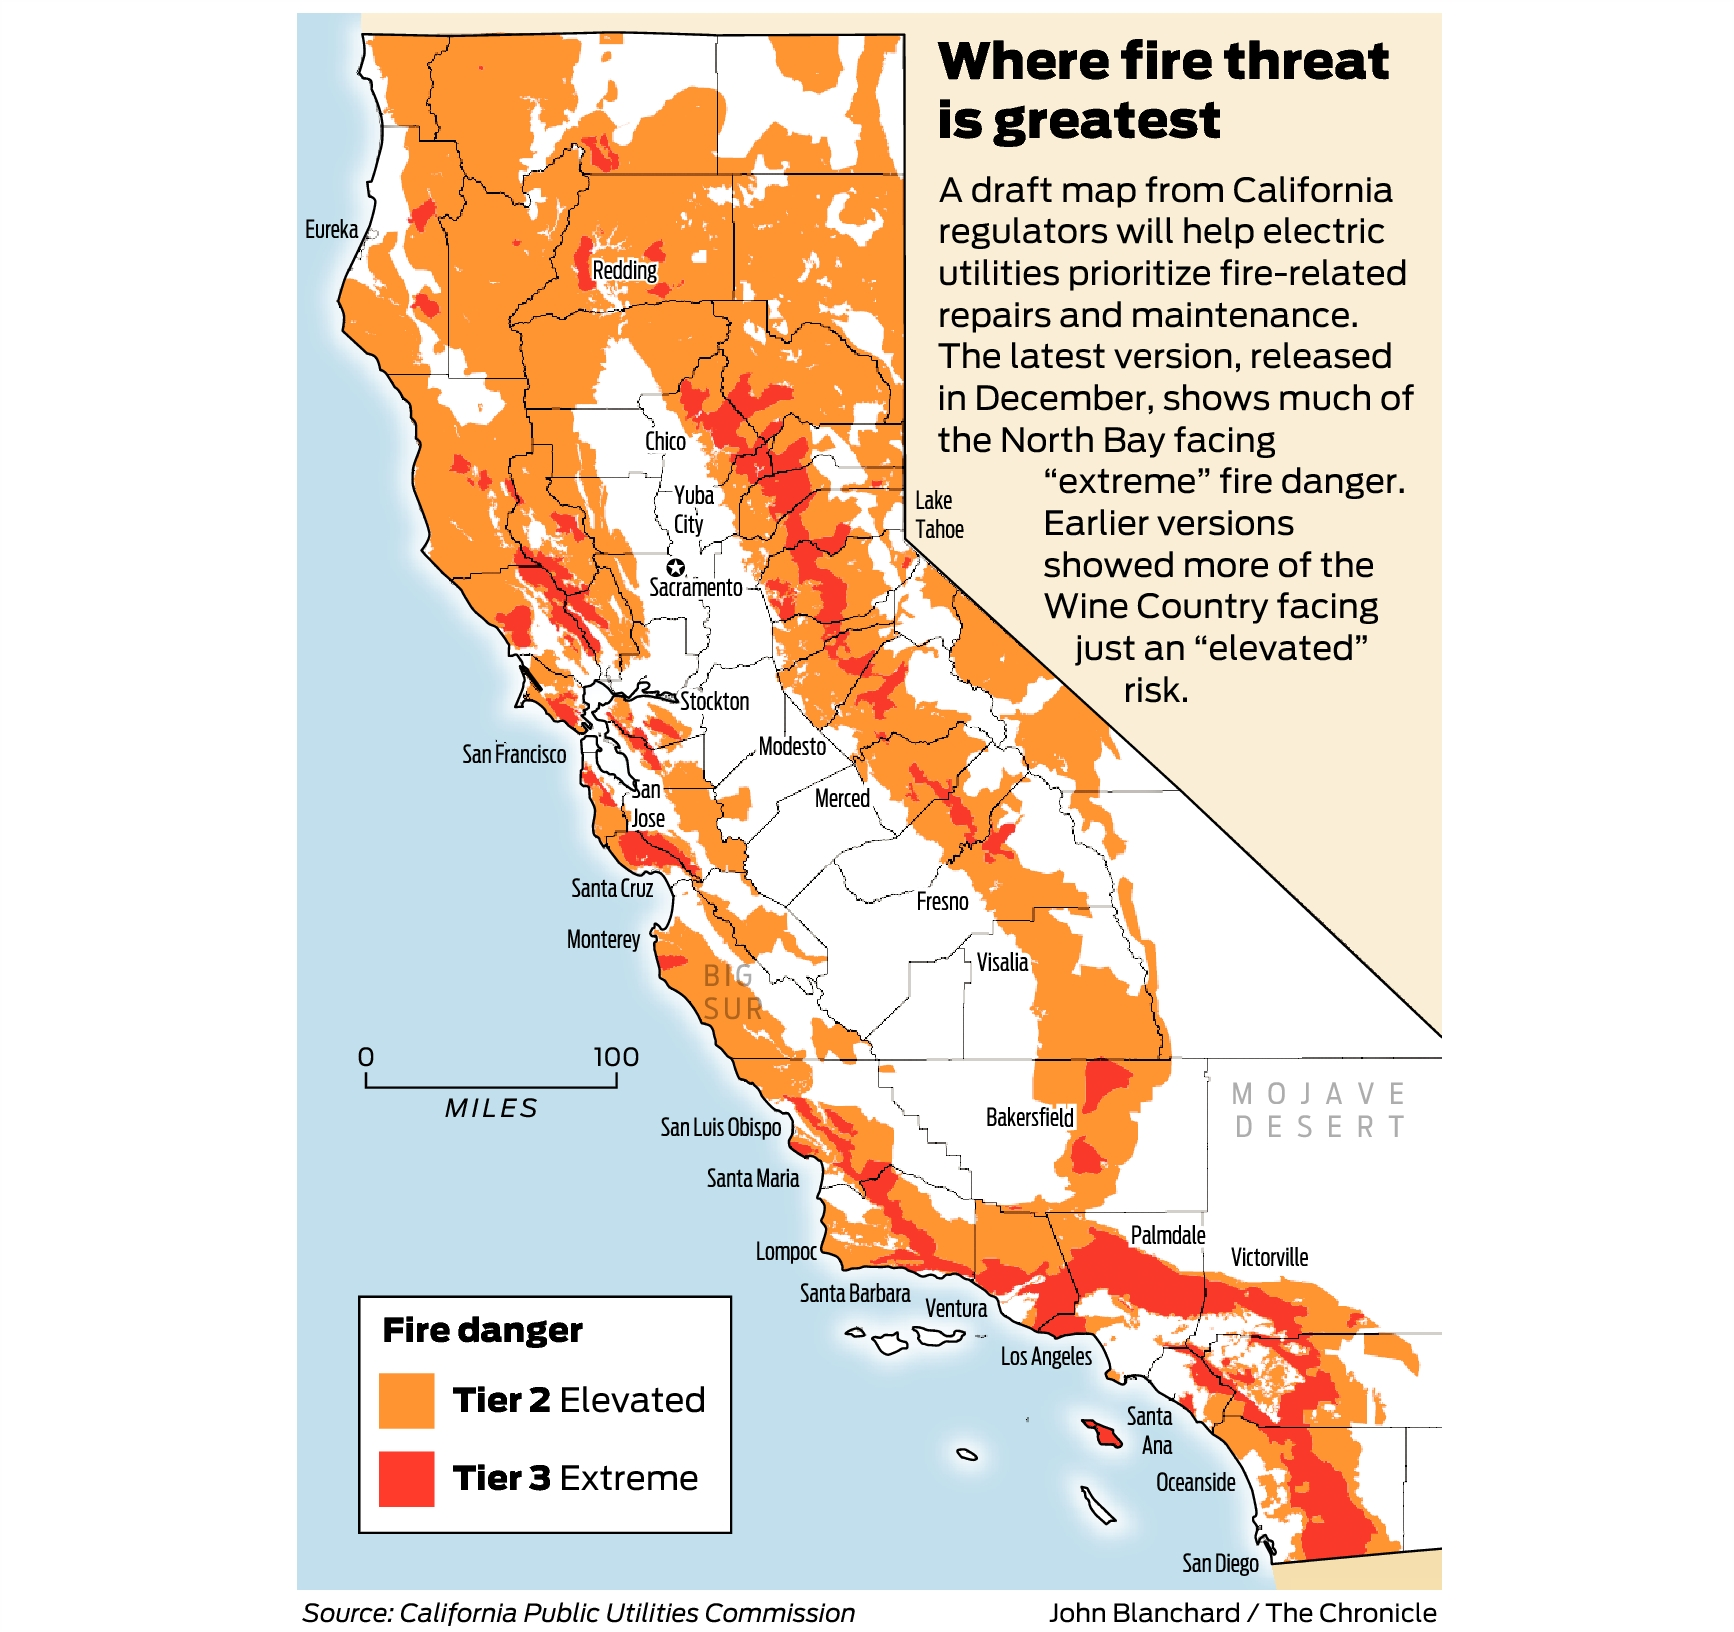 Northern California Fire Map 2018.California Fire Threat Map Not Quite Done But Close Regulators Say